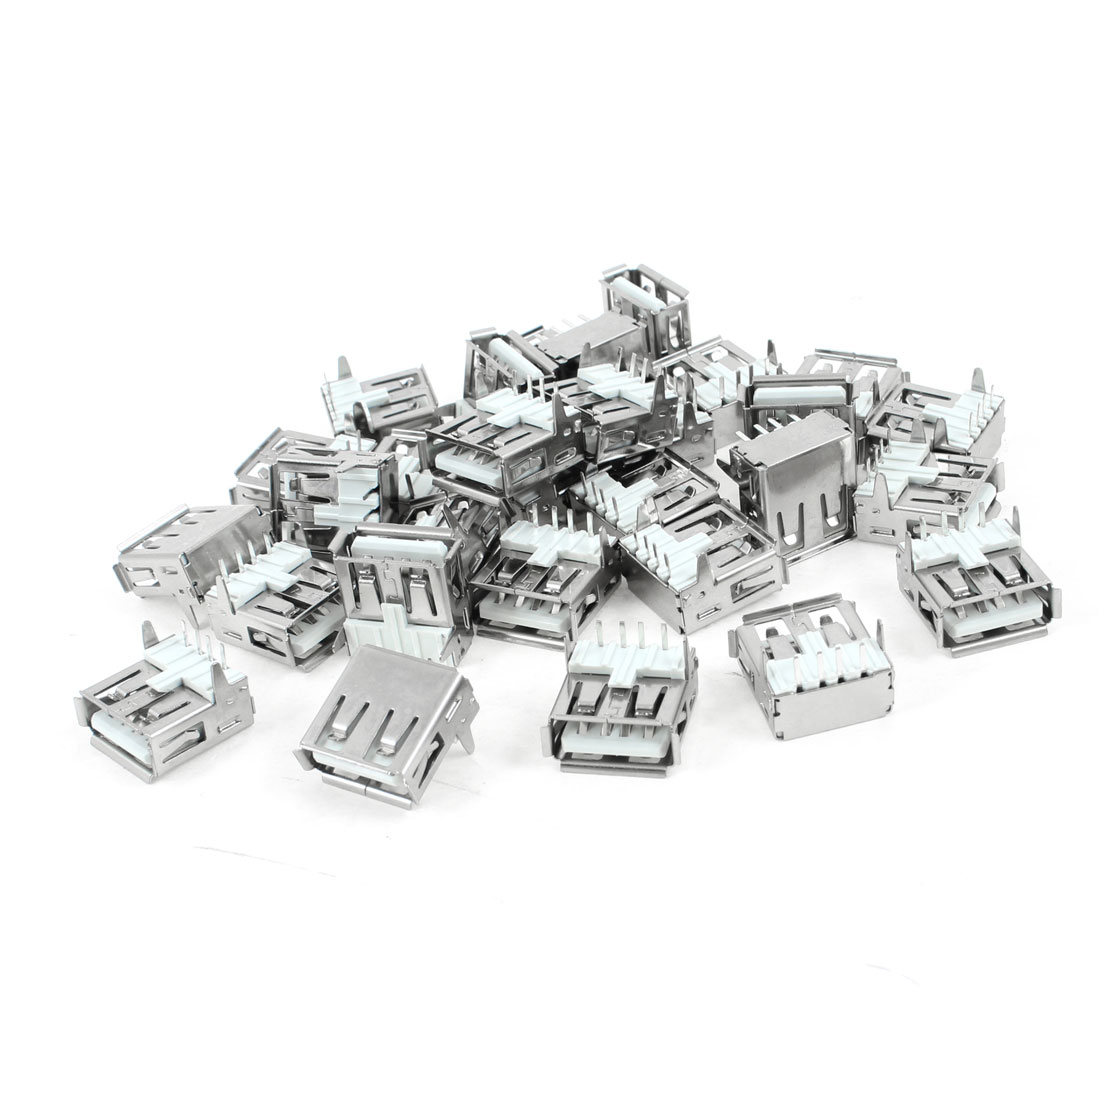 30 Pcs Shielded USB 2.0 Type A 90 Degree 4-Pin DIP Female Jack Socket